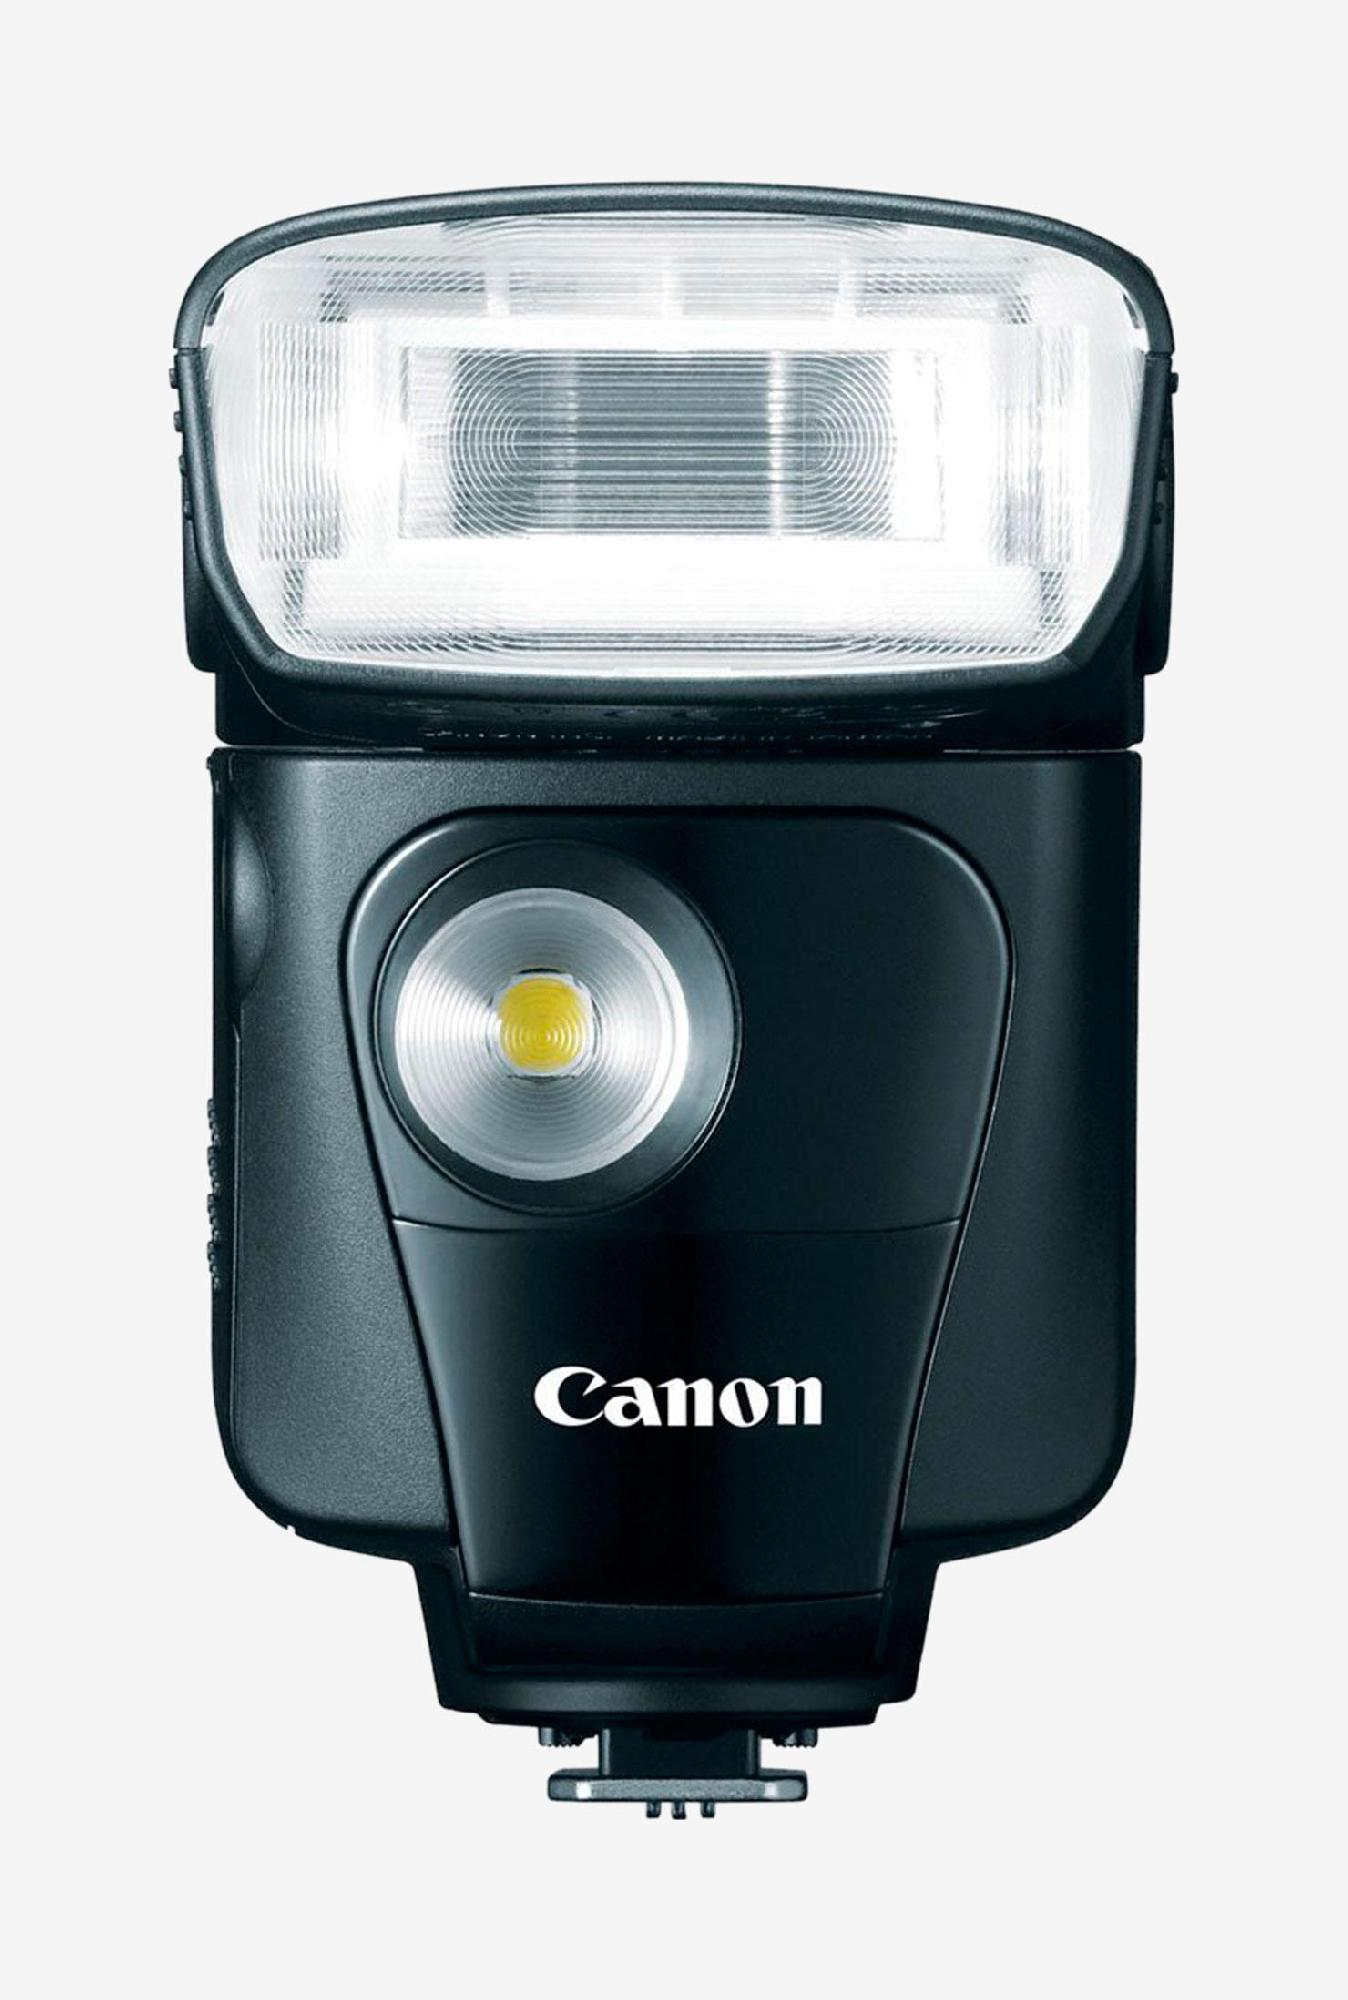 Canon Speedlite 320EX Flash for DSLR Camera